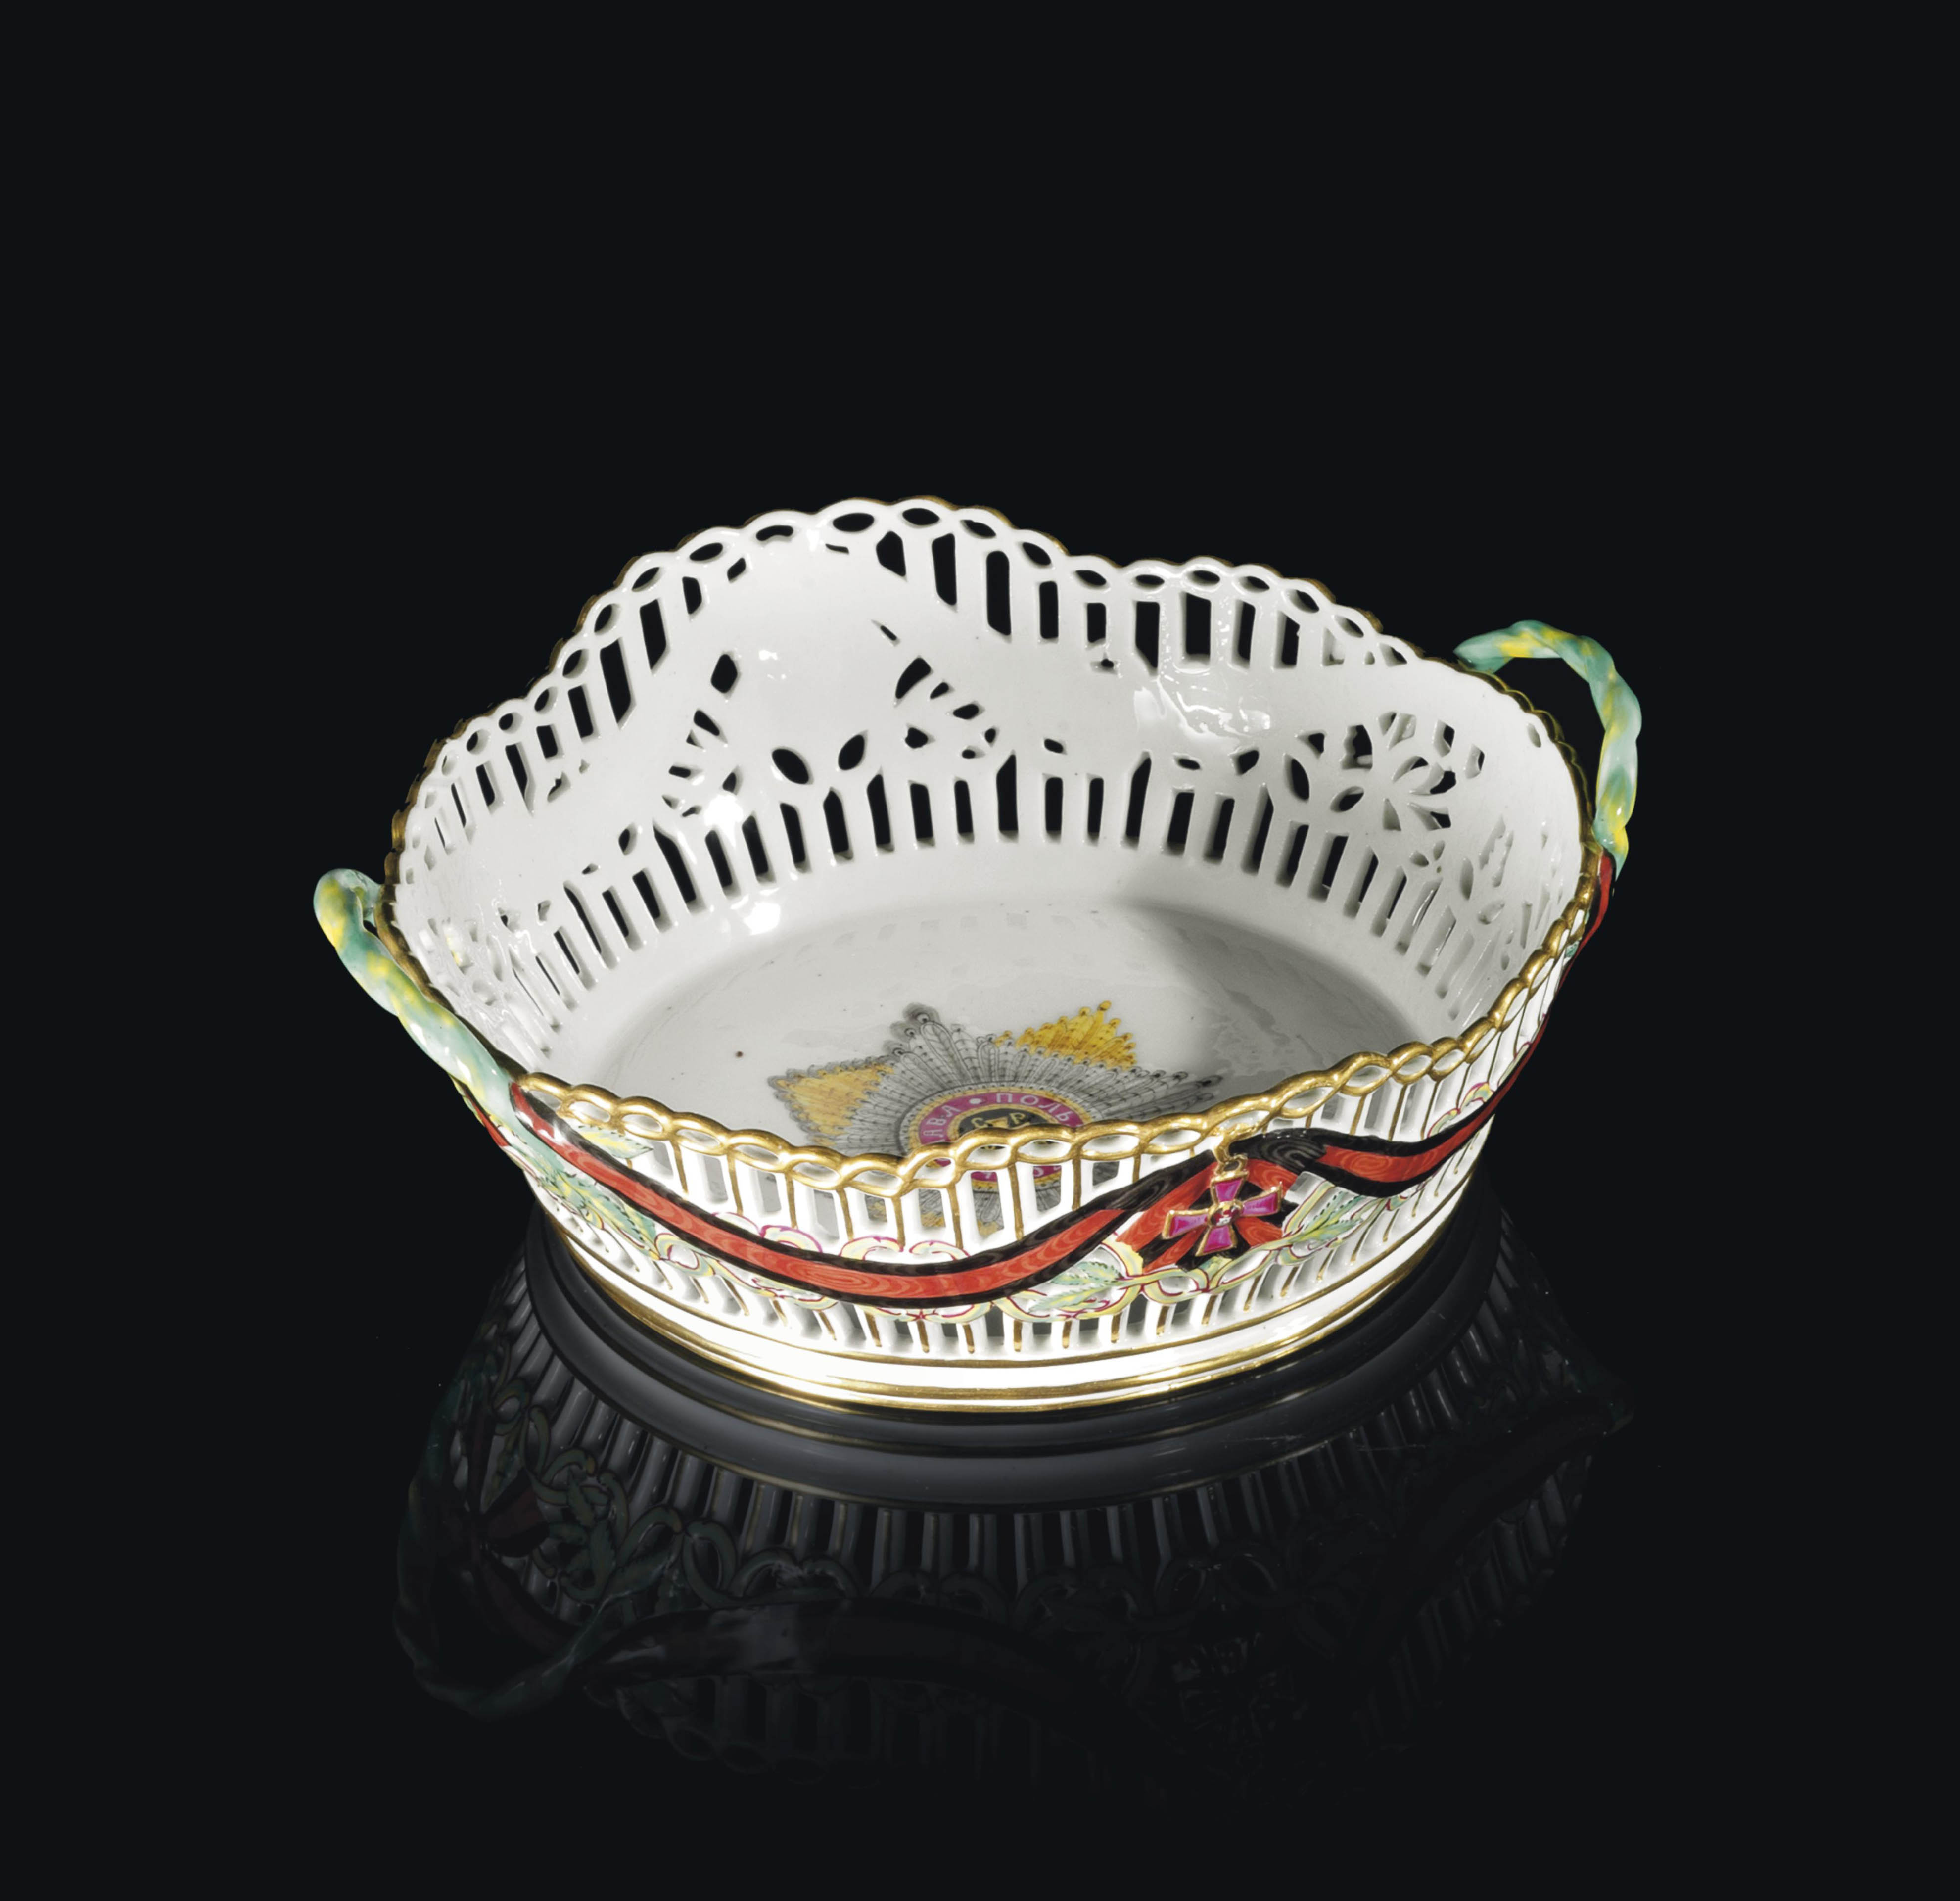 A PORCELAIN BASKET FROM THE SERVICE OF THE ORDER OF ST VLADIMIR